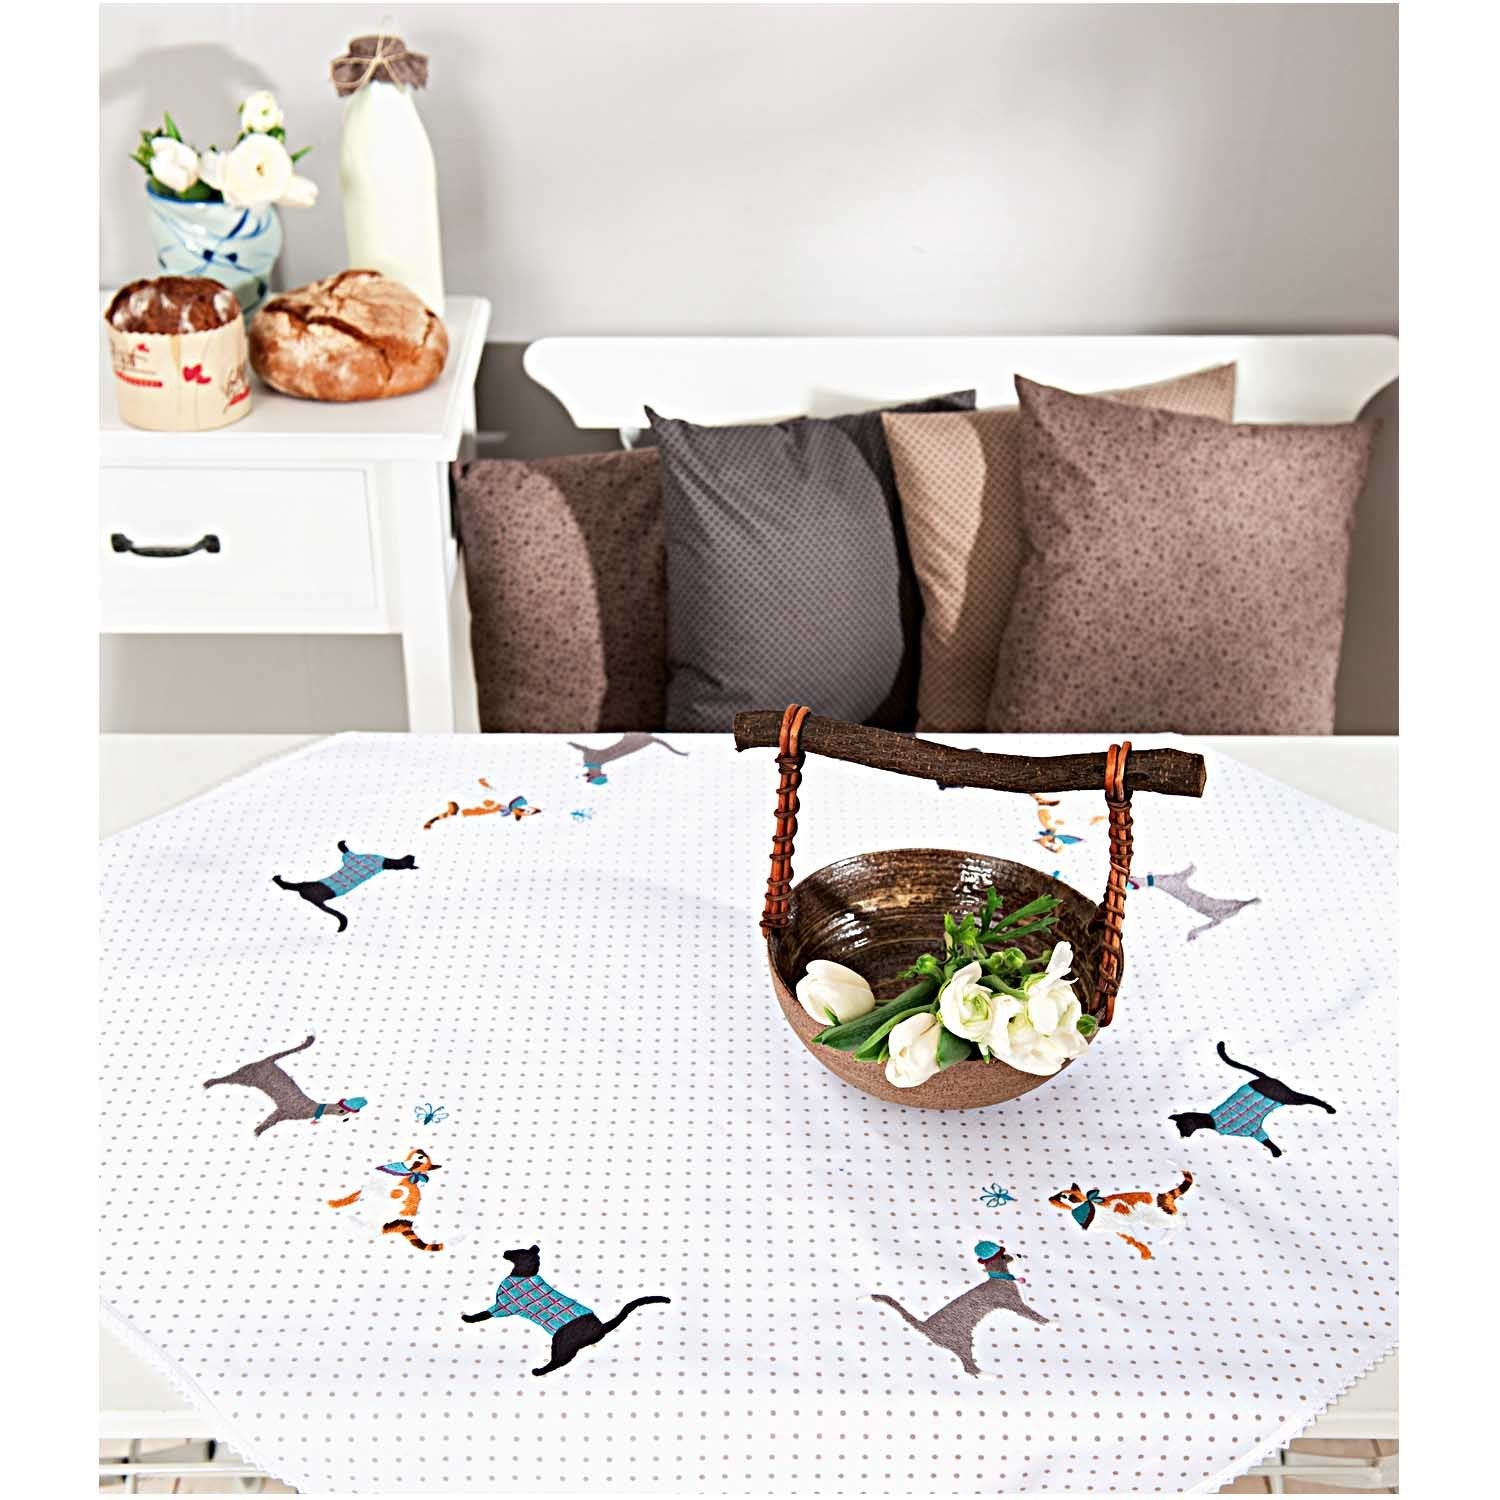 Rico Cat Tablecloth Kit